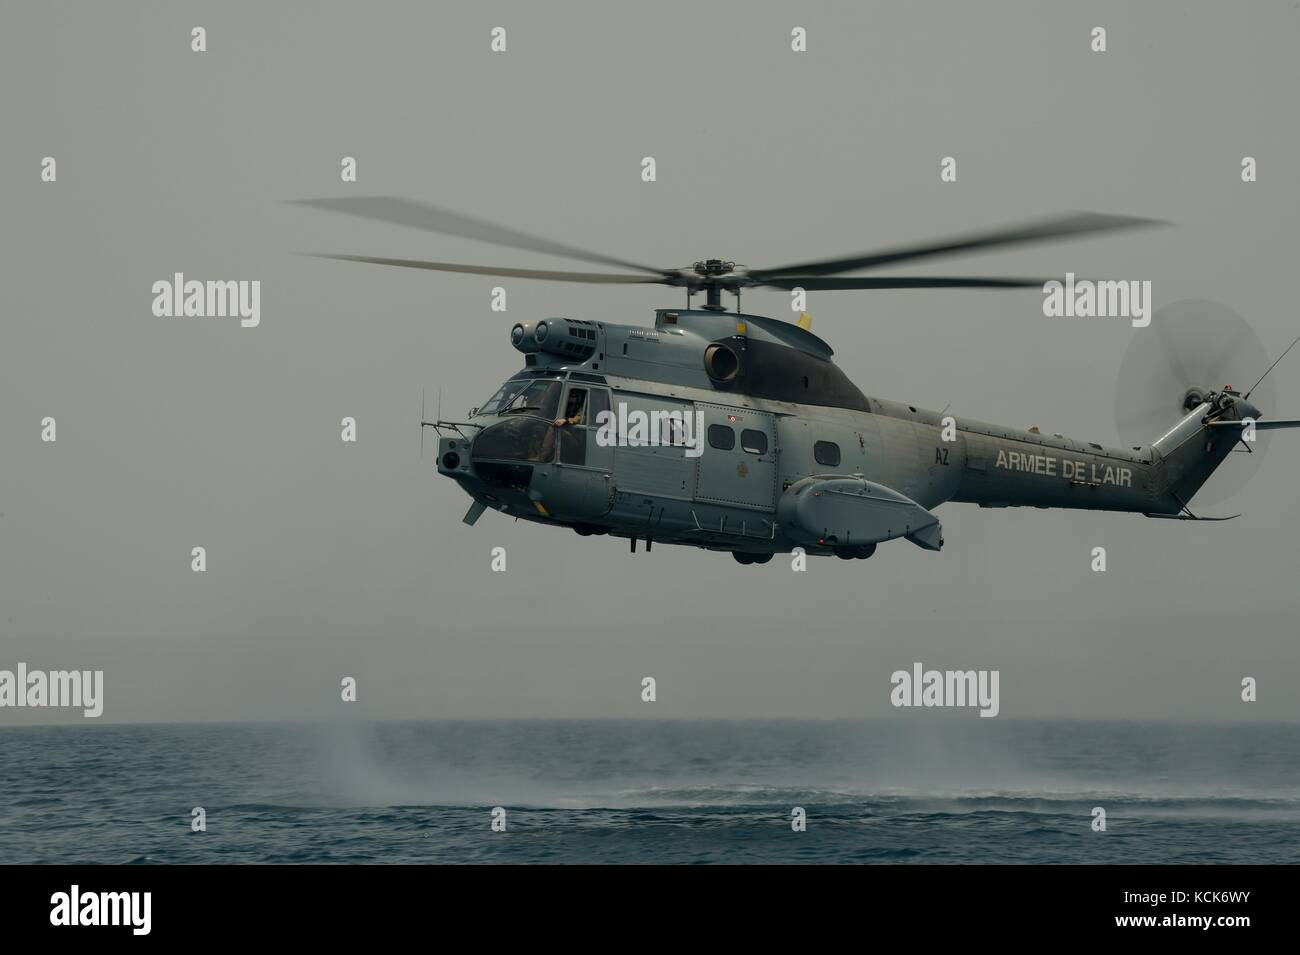 A French Air Force Aerospatiale SA 330 Puma utility helicopter hovers over the ocean during a water exercise with - Stock Image